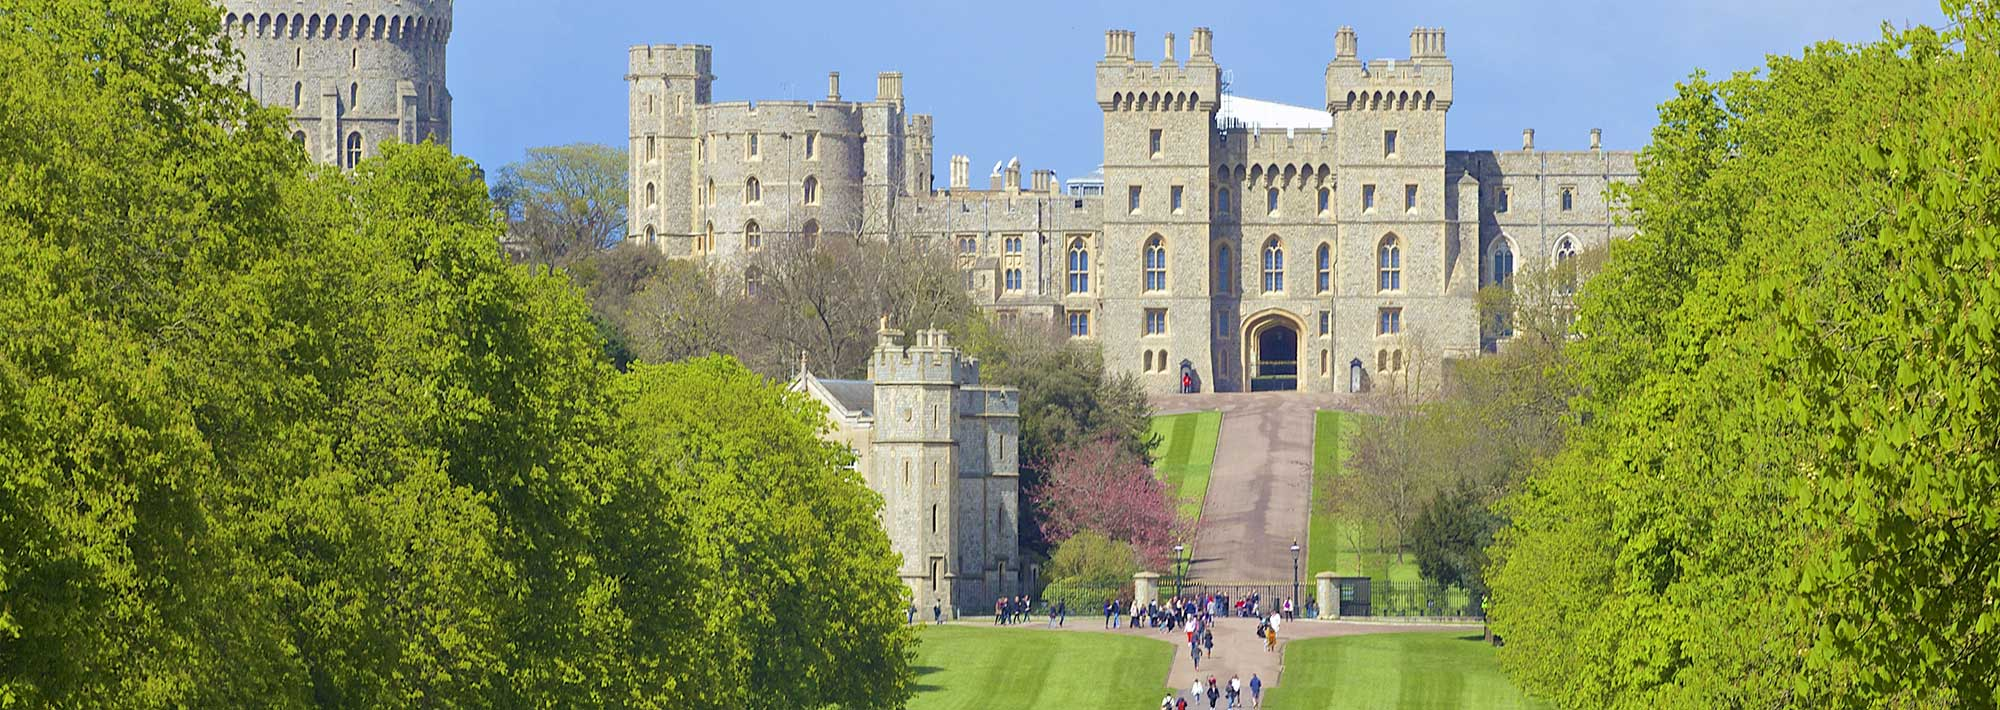 Windsor Castle | jhtravel.org